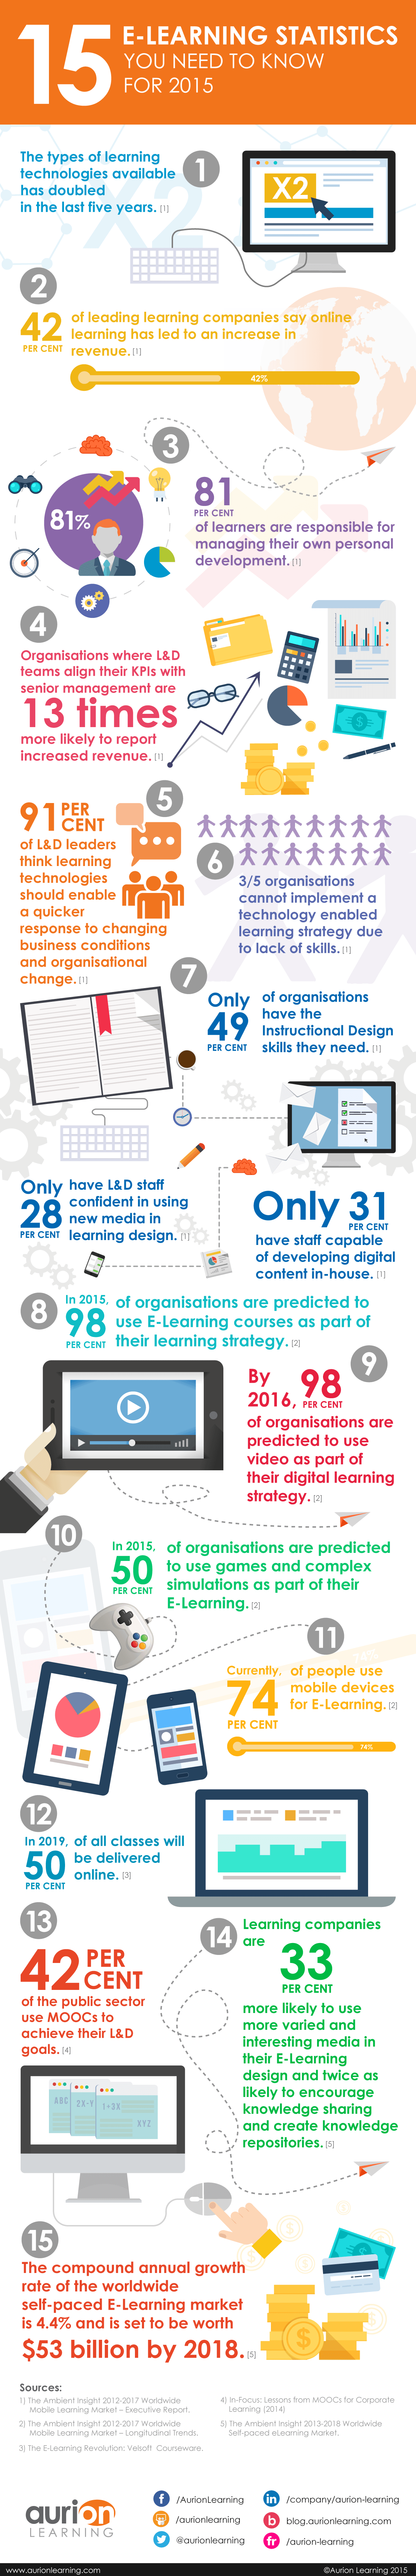 15 E-Learning Statistics You Need To Know For 2015 | Aurion Learning thumbnail